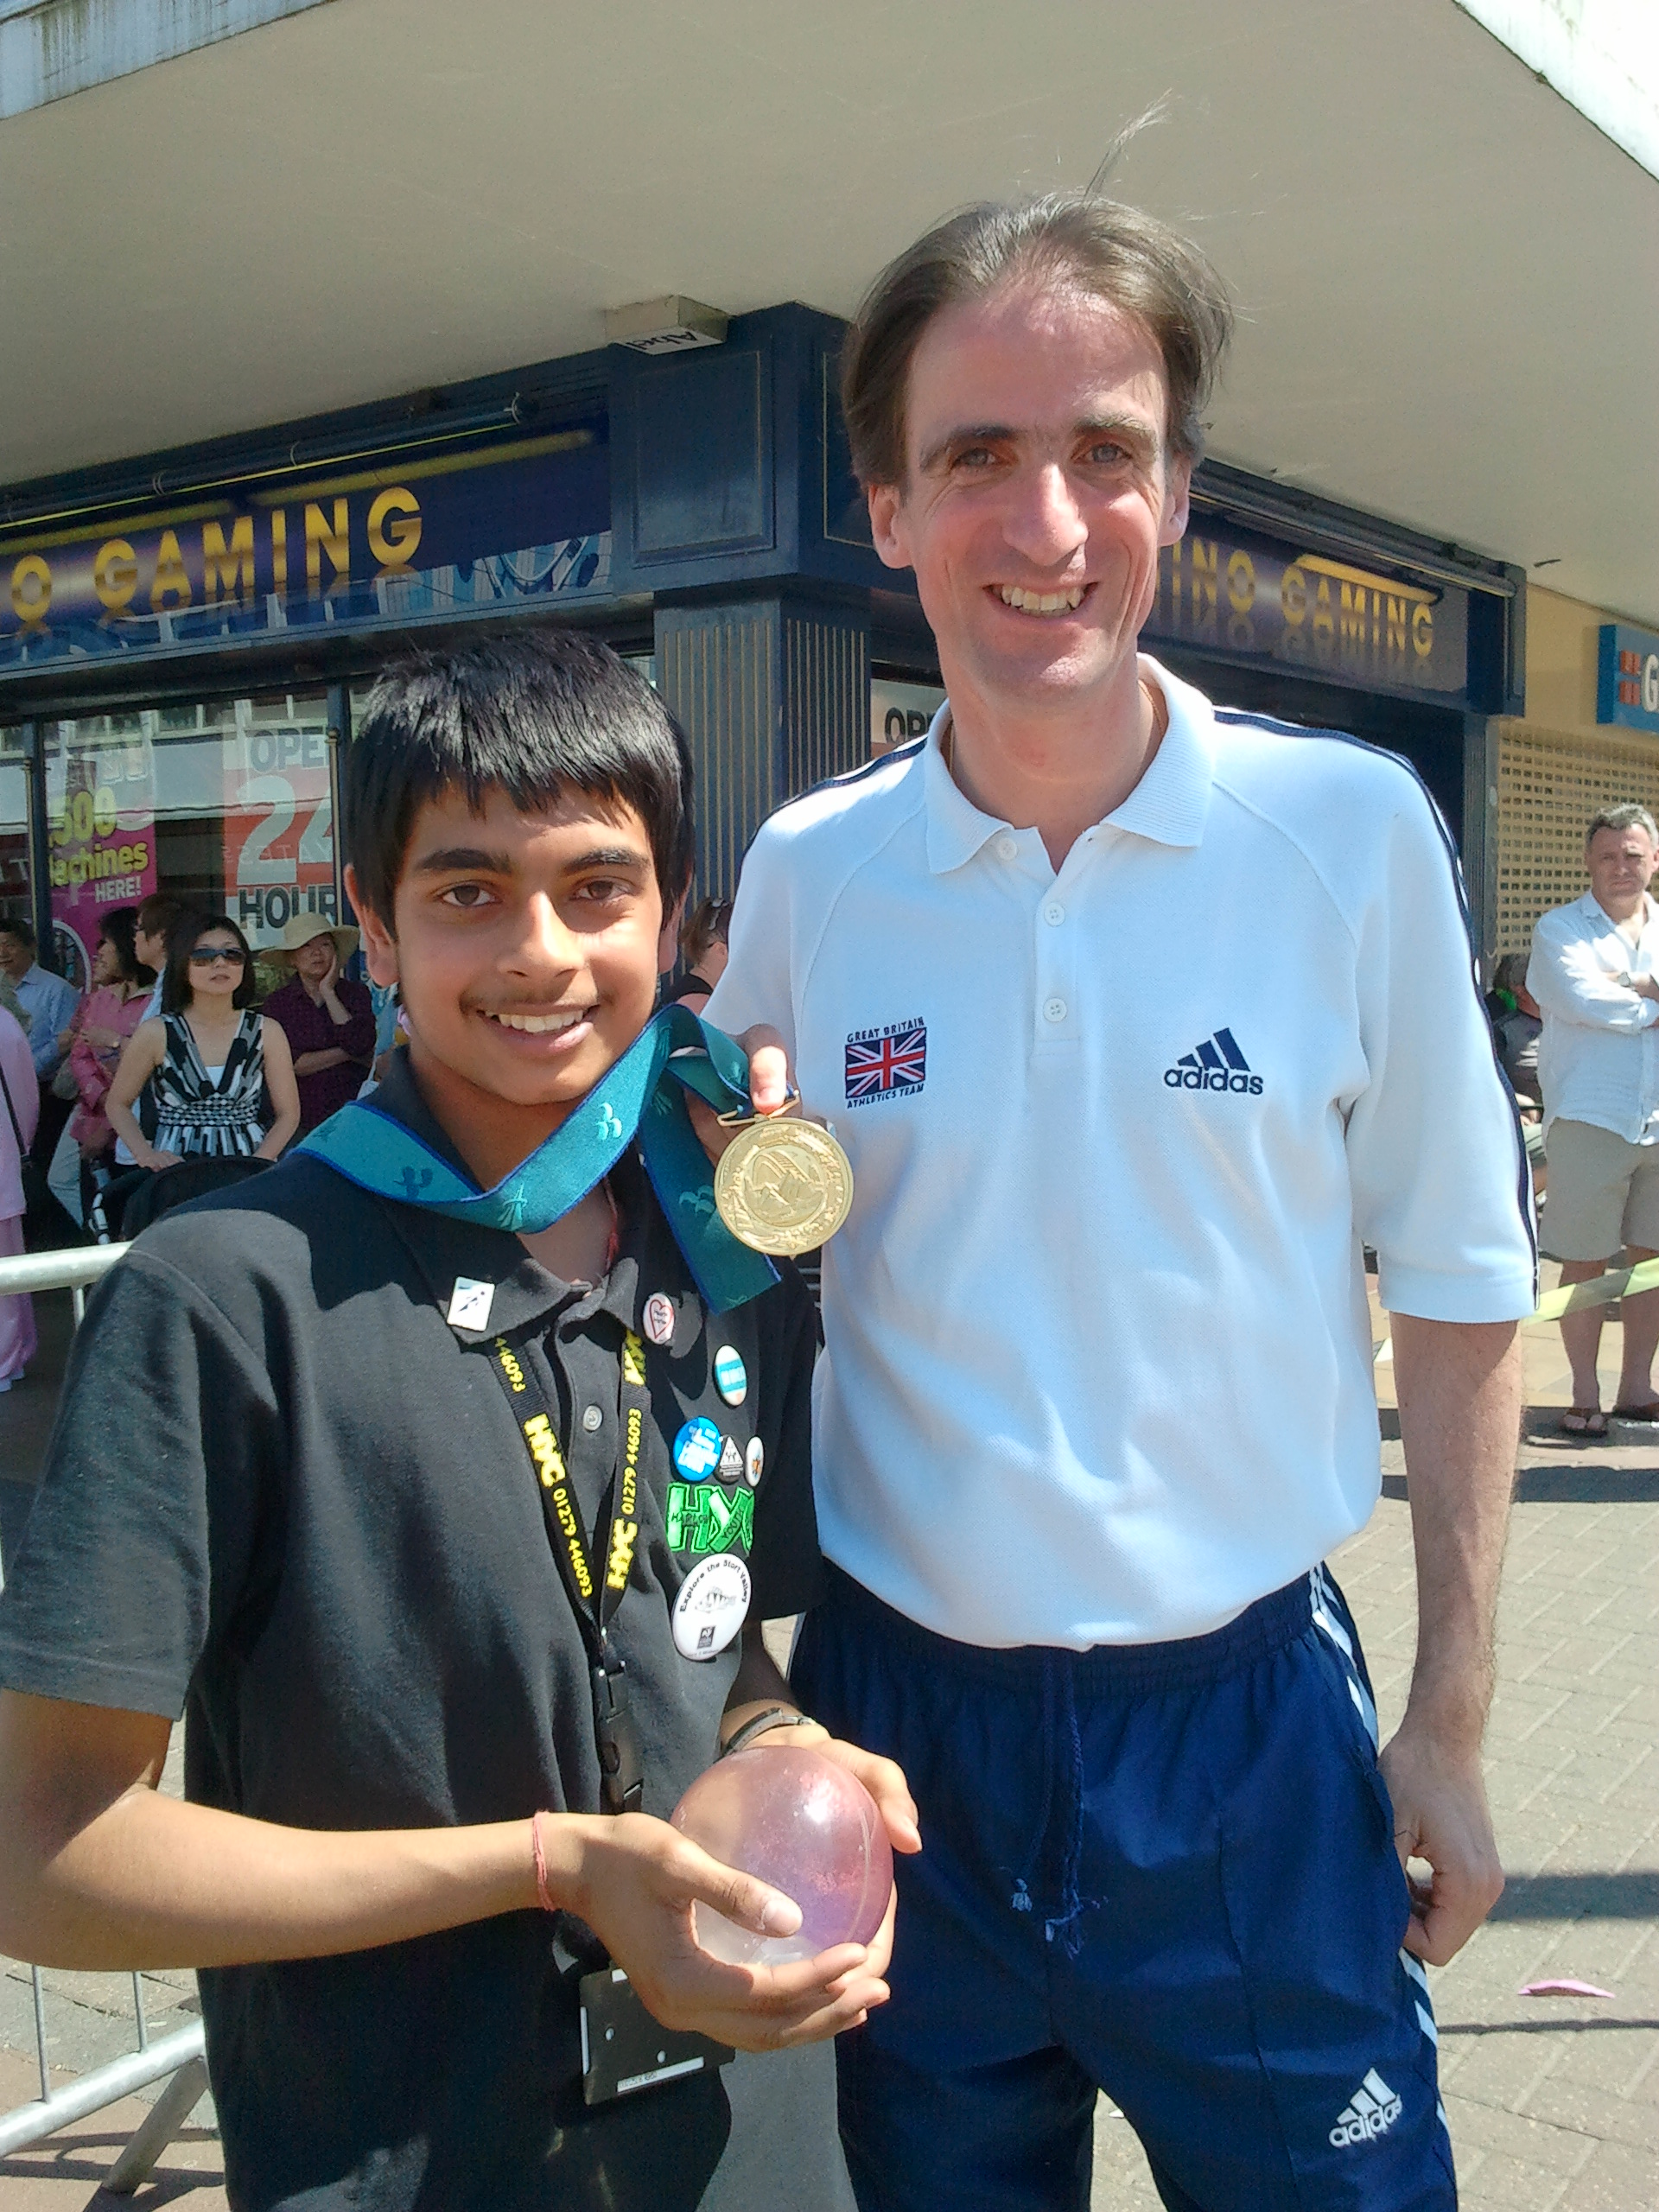 Nishall+Meets+Noel+Thatcher,+olympian+27.5.12+@Sparks+will+Fly.jpg